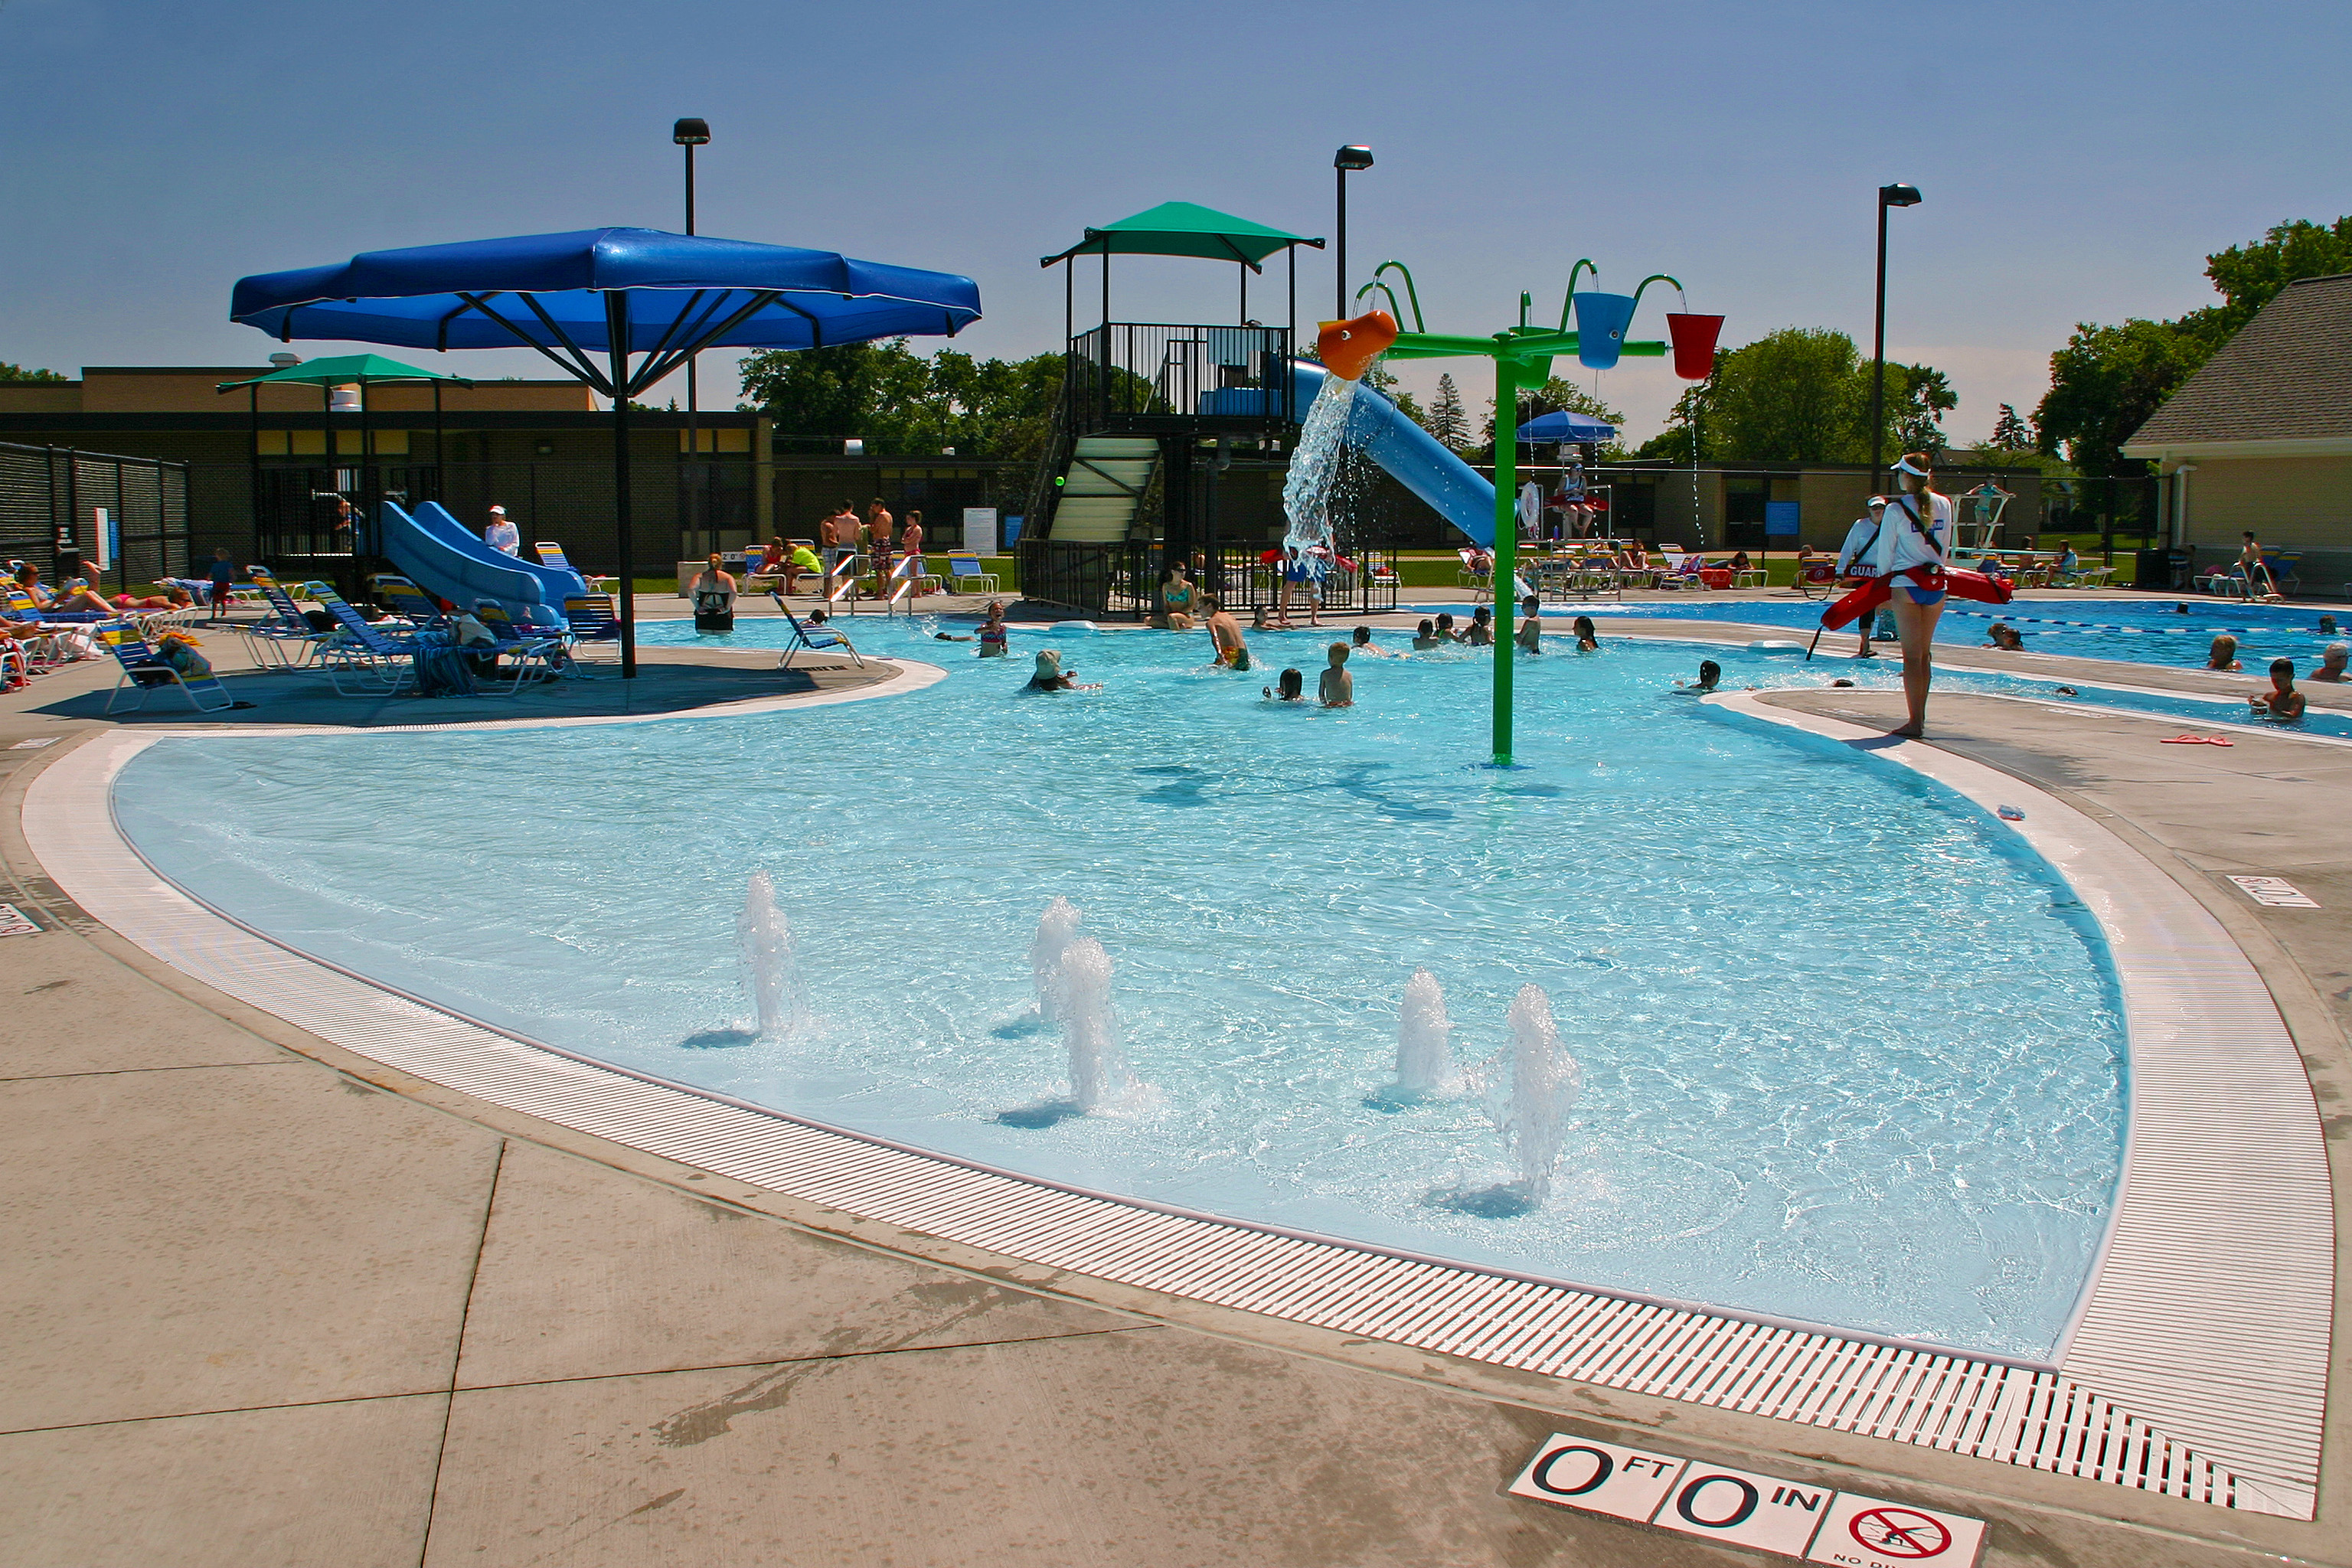 Chippewa pool des plaines park district - Lake district campsites with swimming pool ...